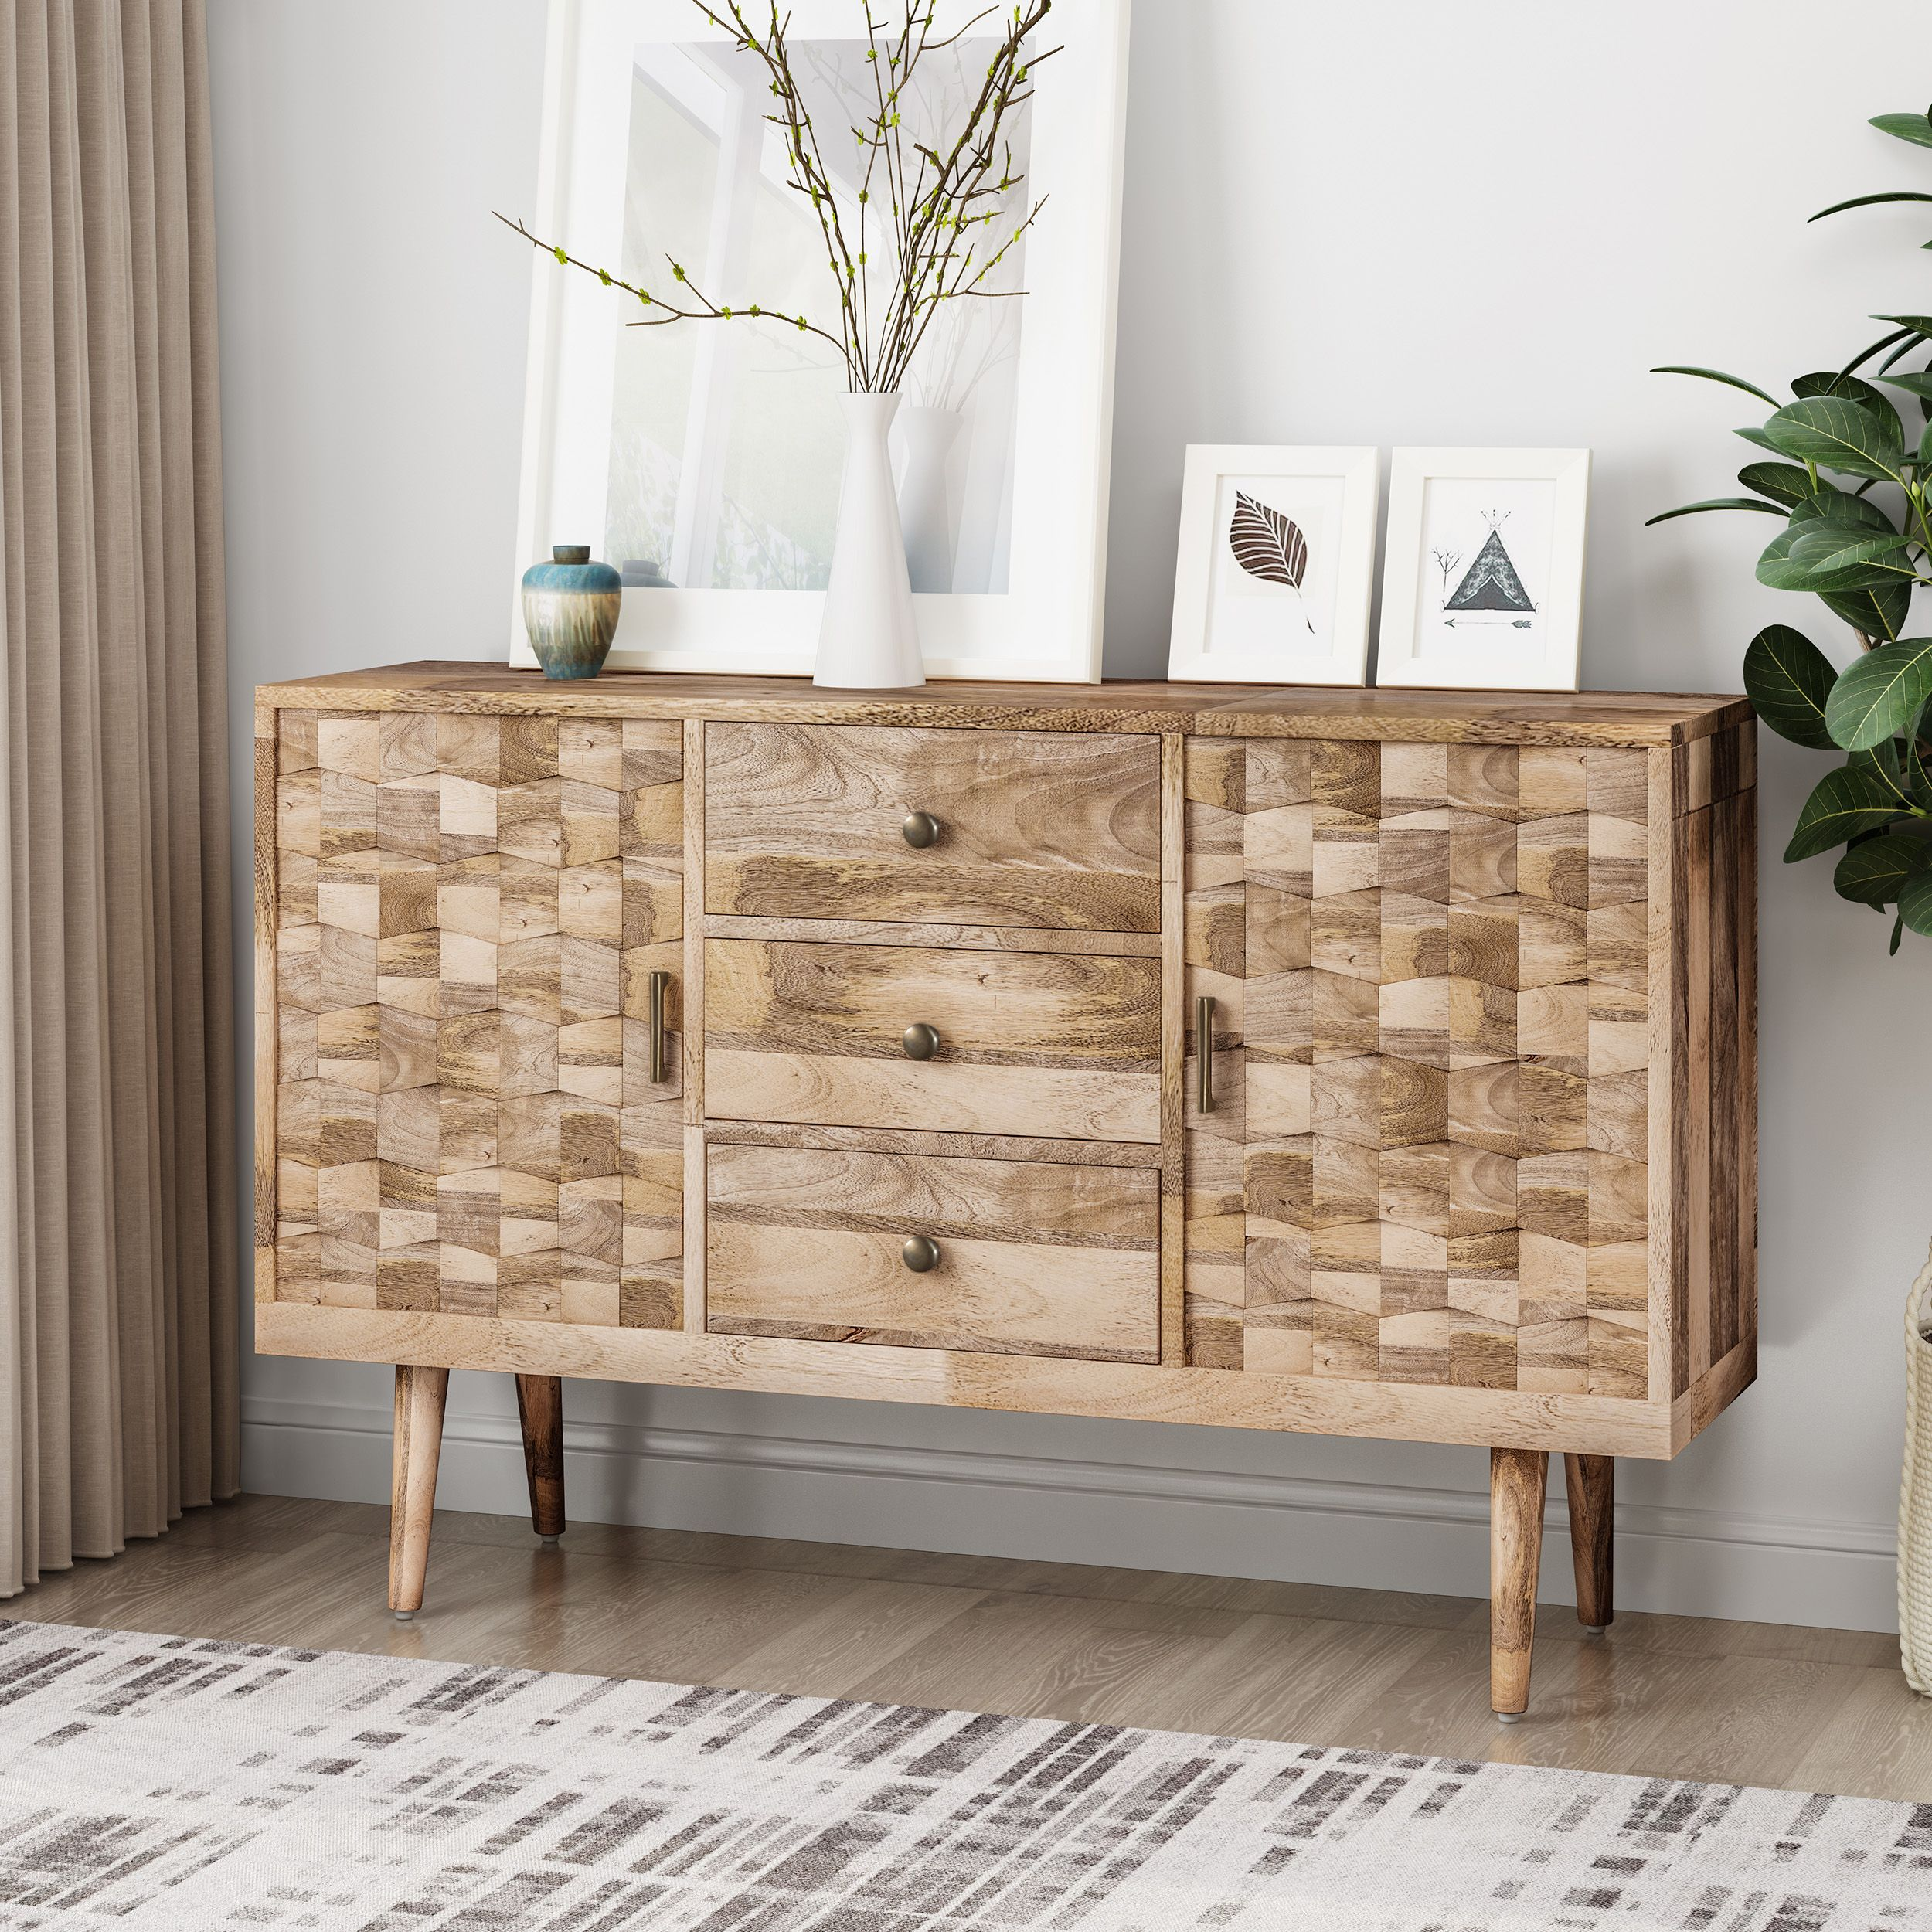 Noble House Adhvika Mid Century Modern Mango Wood 3 Drawer Sideboard With 2 Doors Natural Walmart Com Mango Wood Mid Century Modern Sideboard Noble House